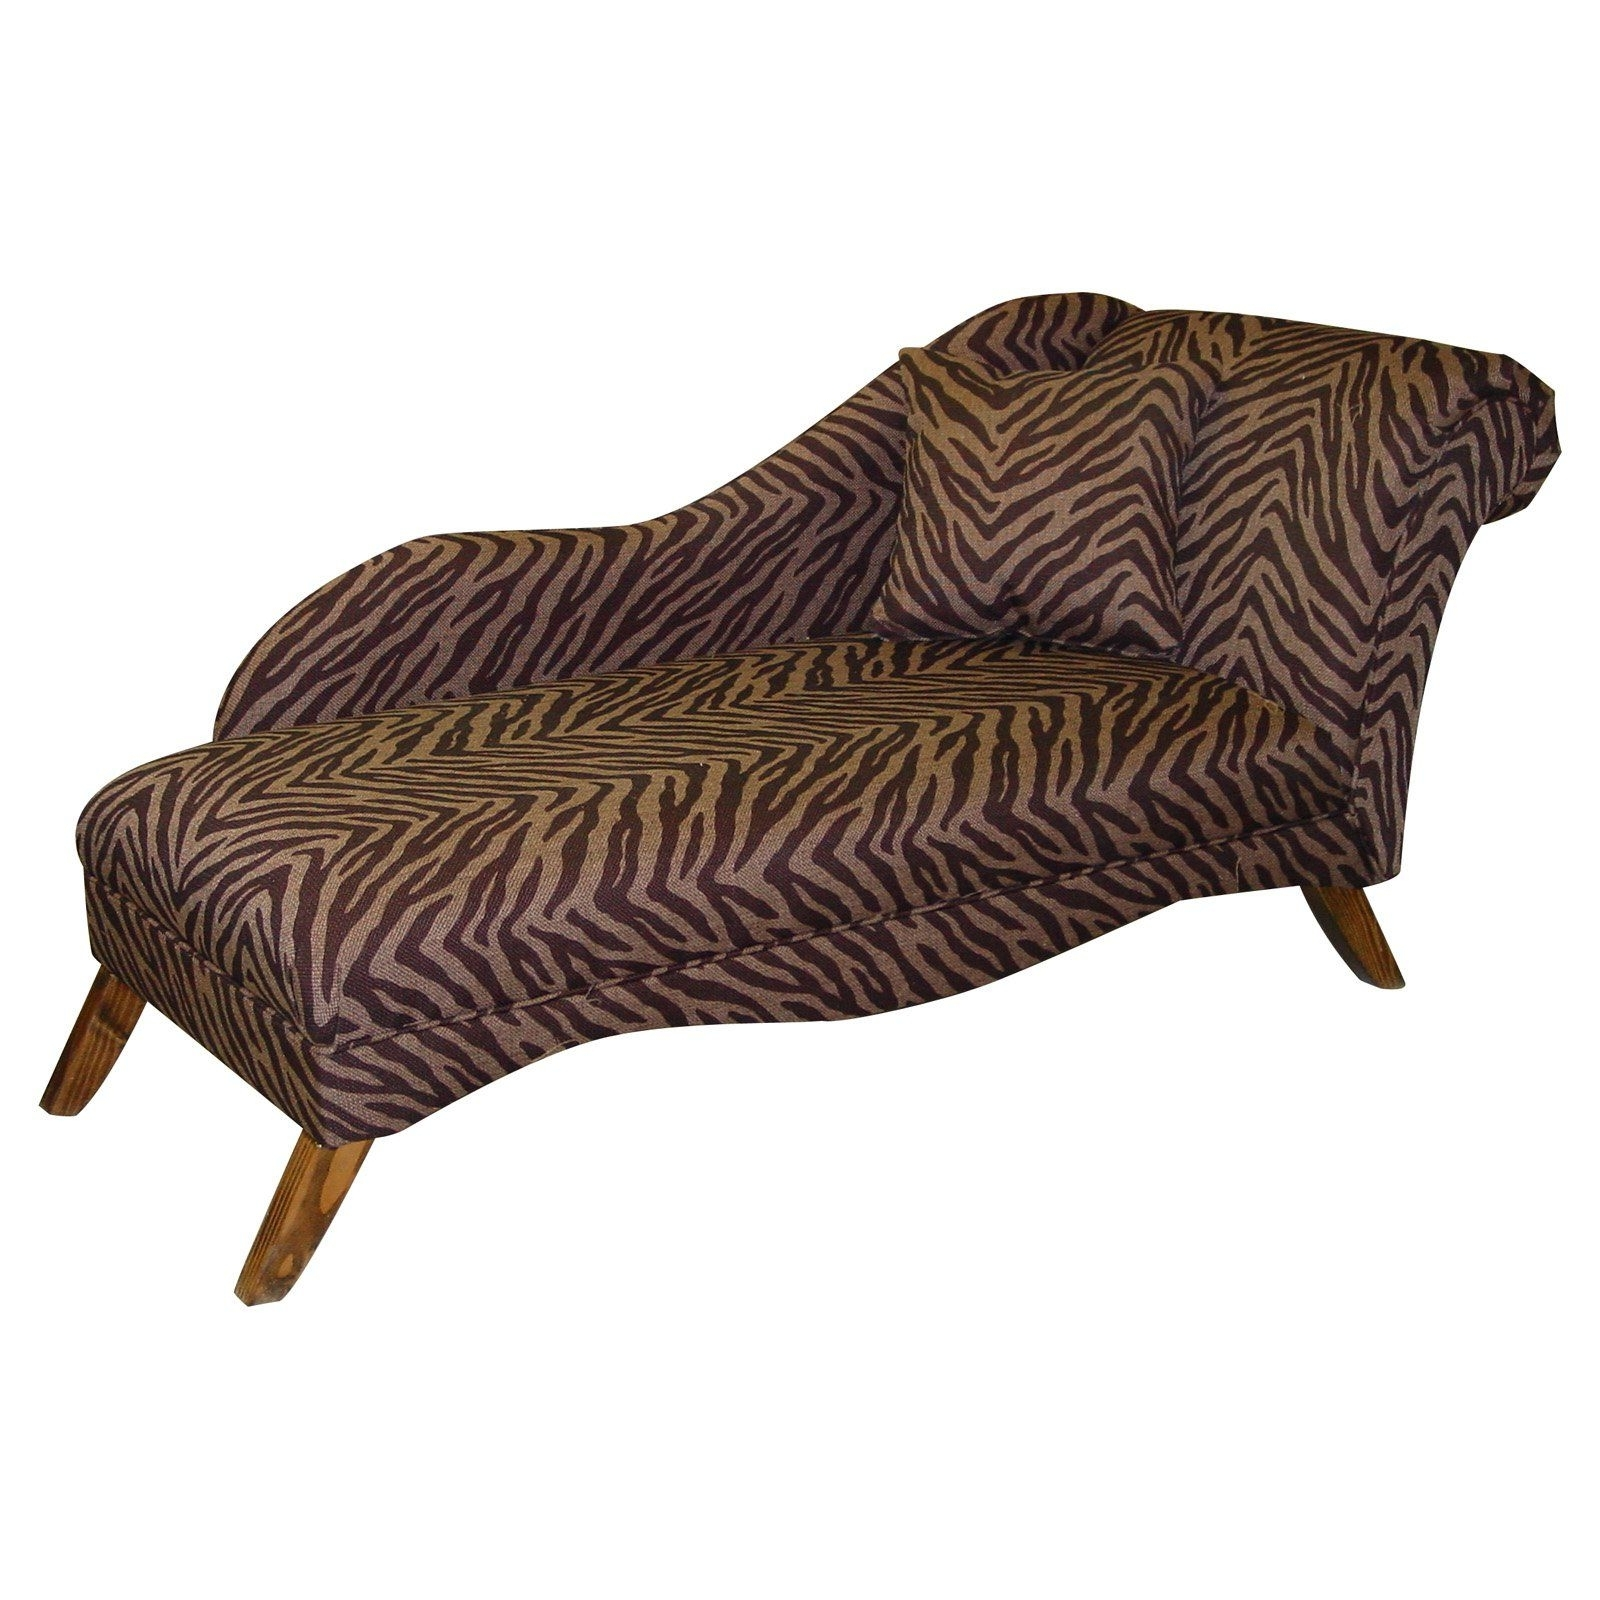 Unbelievable Leopard Chaise Lounge With Image For Animal Print With Regard To Preferred Leopard Chaises (View 9 of 15)